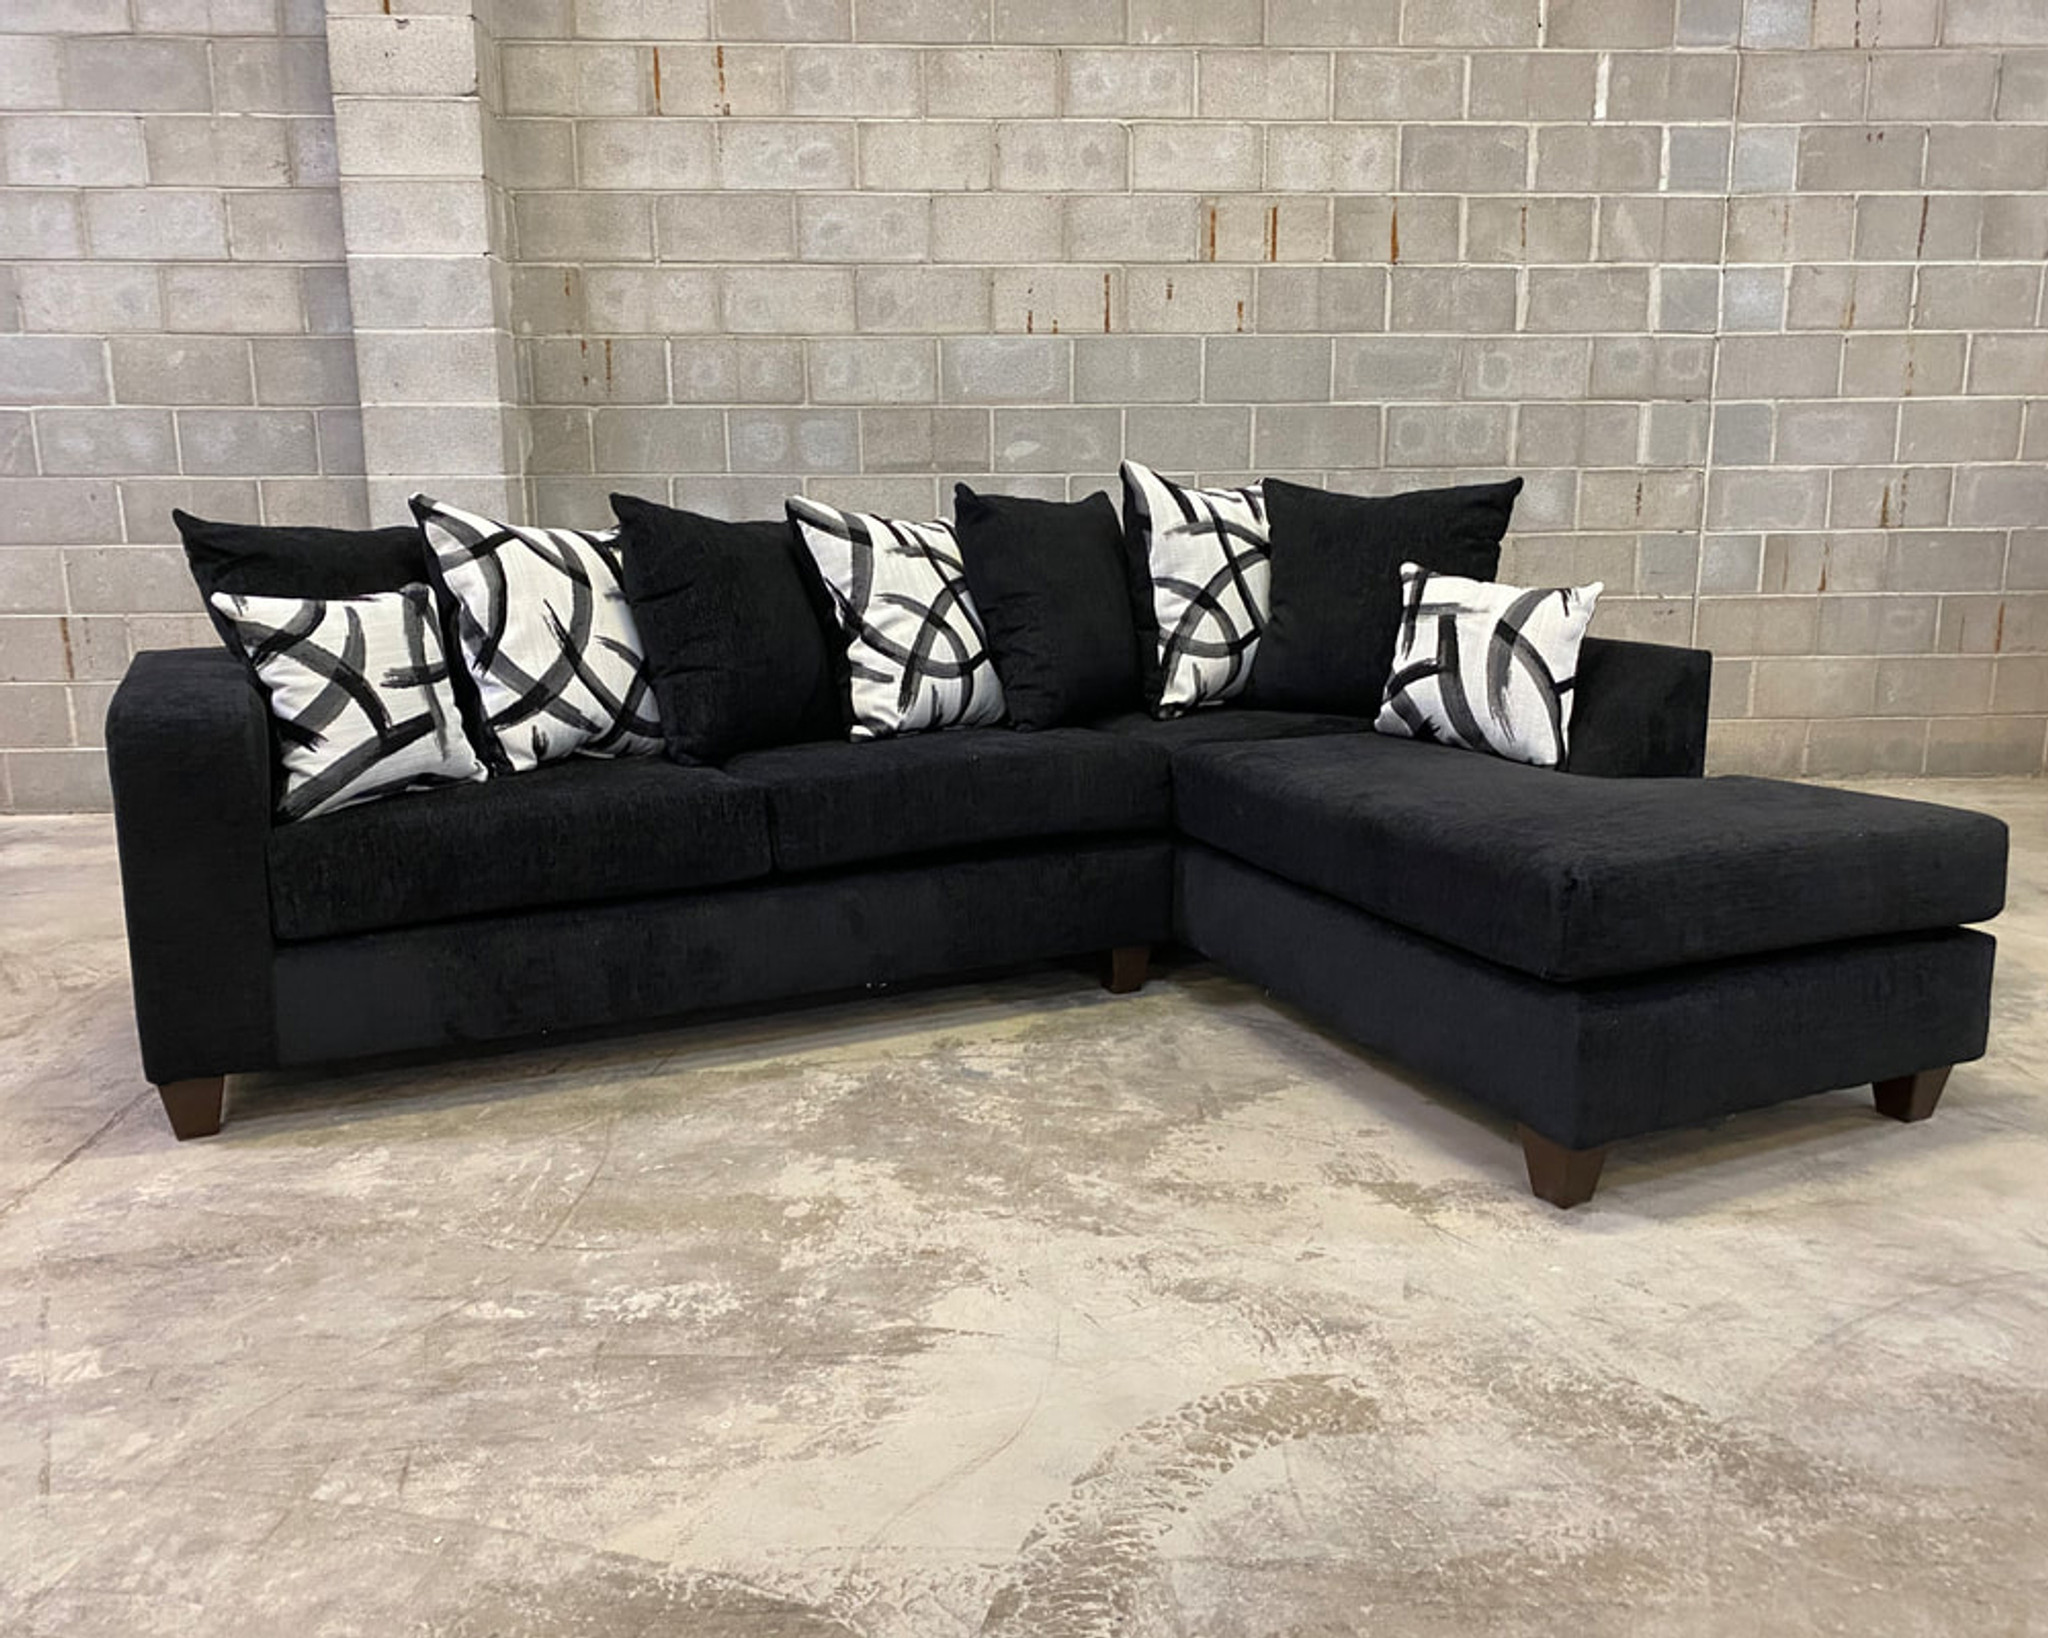 2 Pcs Madison Sectional Sofa In Black Color Happy Home Industries Houston Texas 110 Black